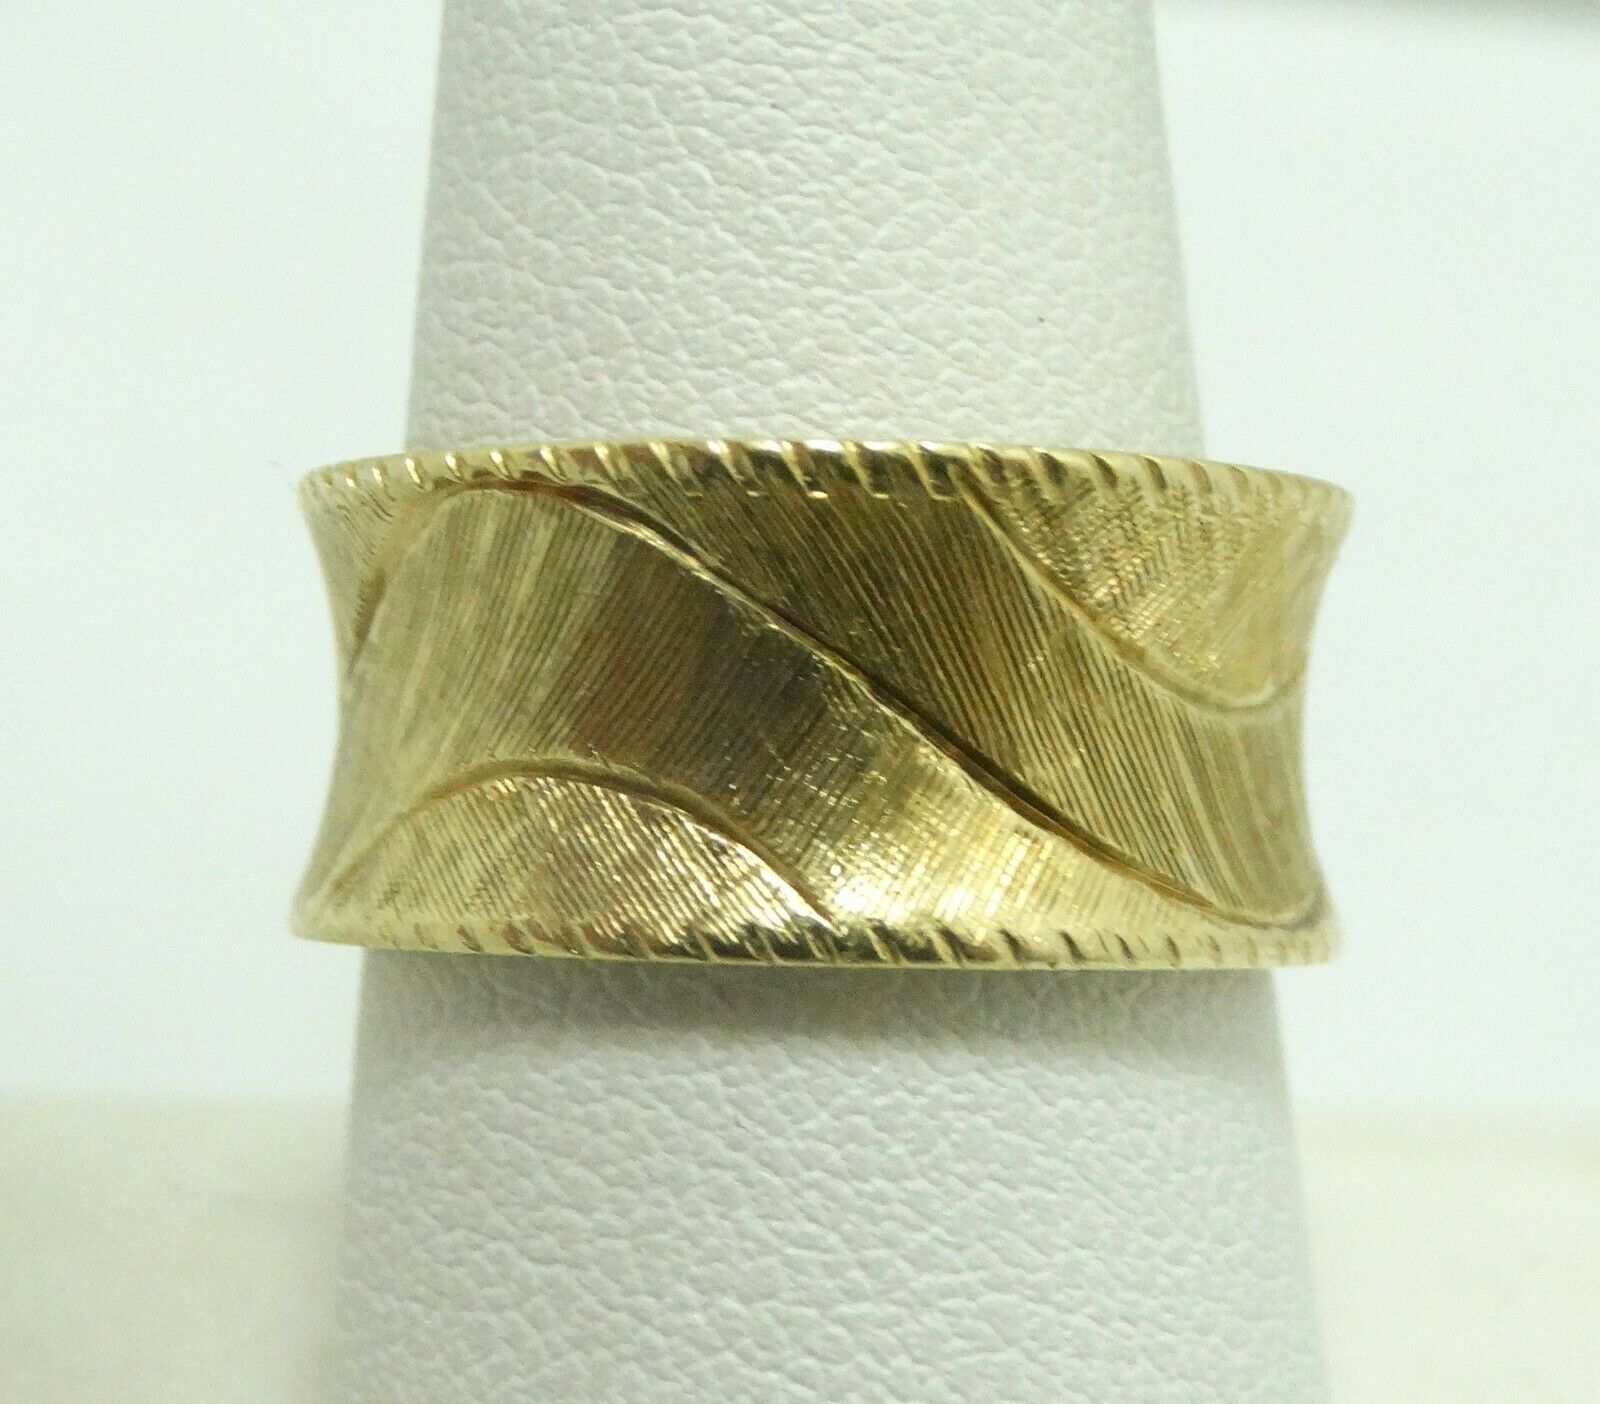 Gorgeous 14K Yellowgold 10mm Dia Cut Wavy Textured Ring Size 8.25 8.2grams D7874